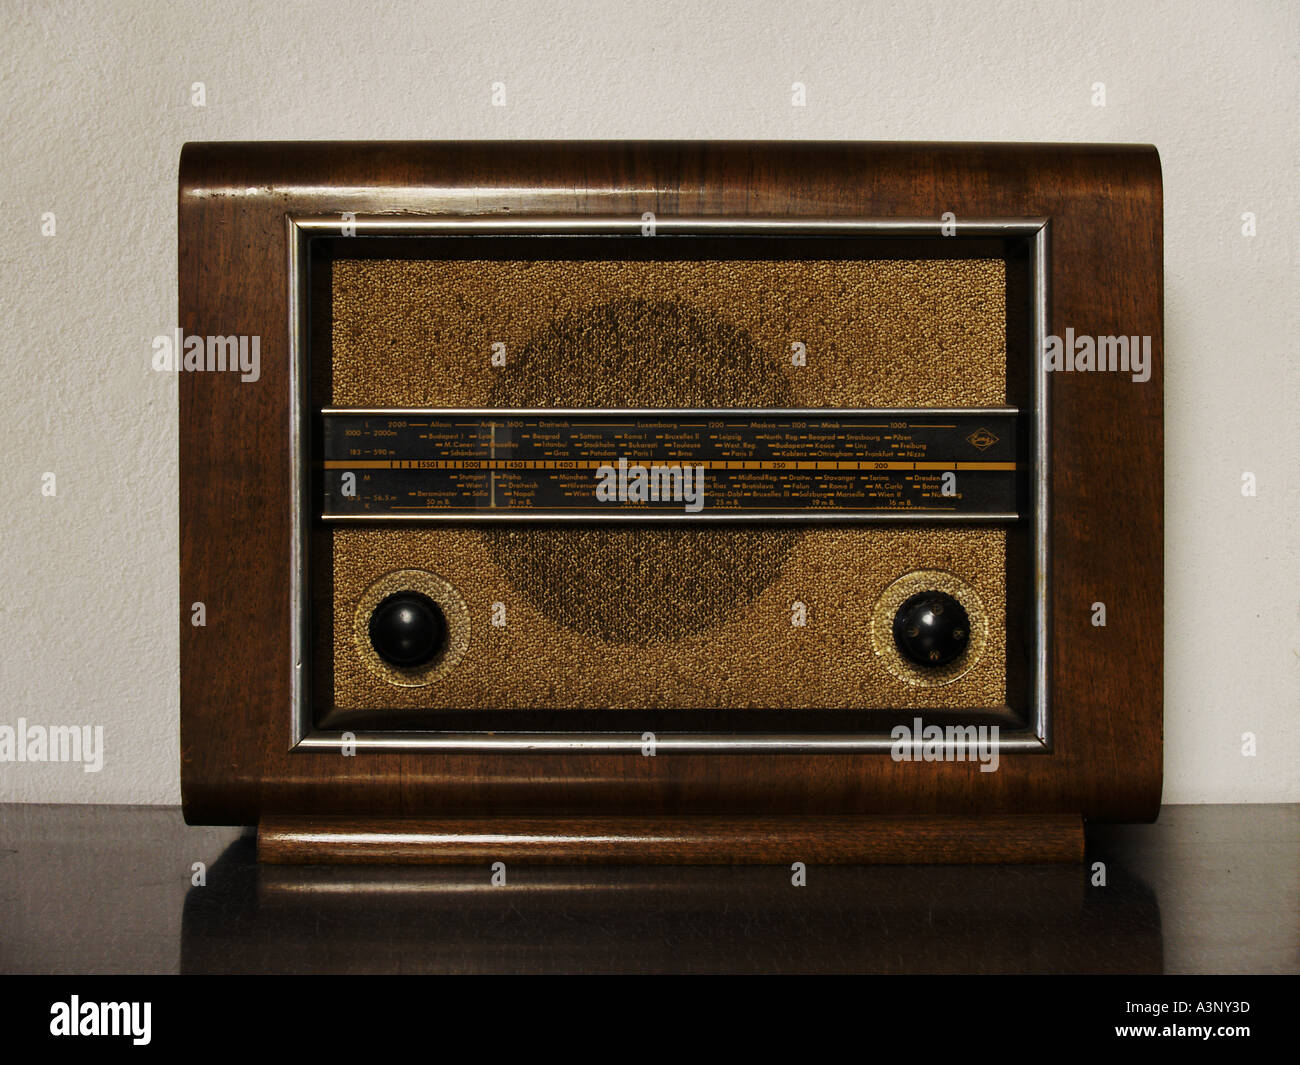 old radio set - Stock Image